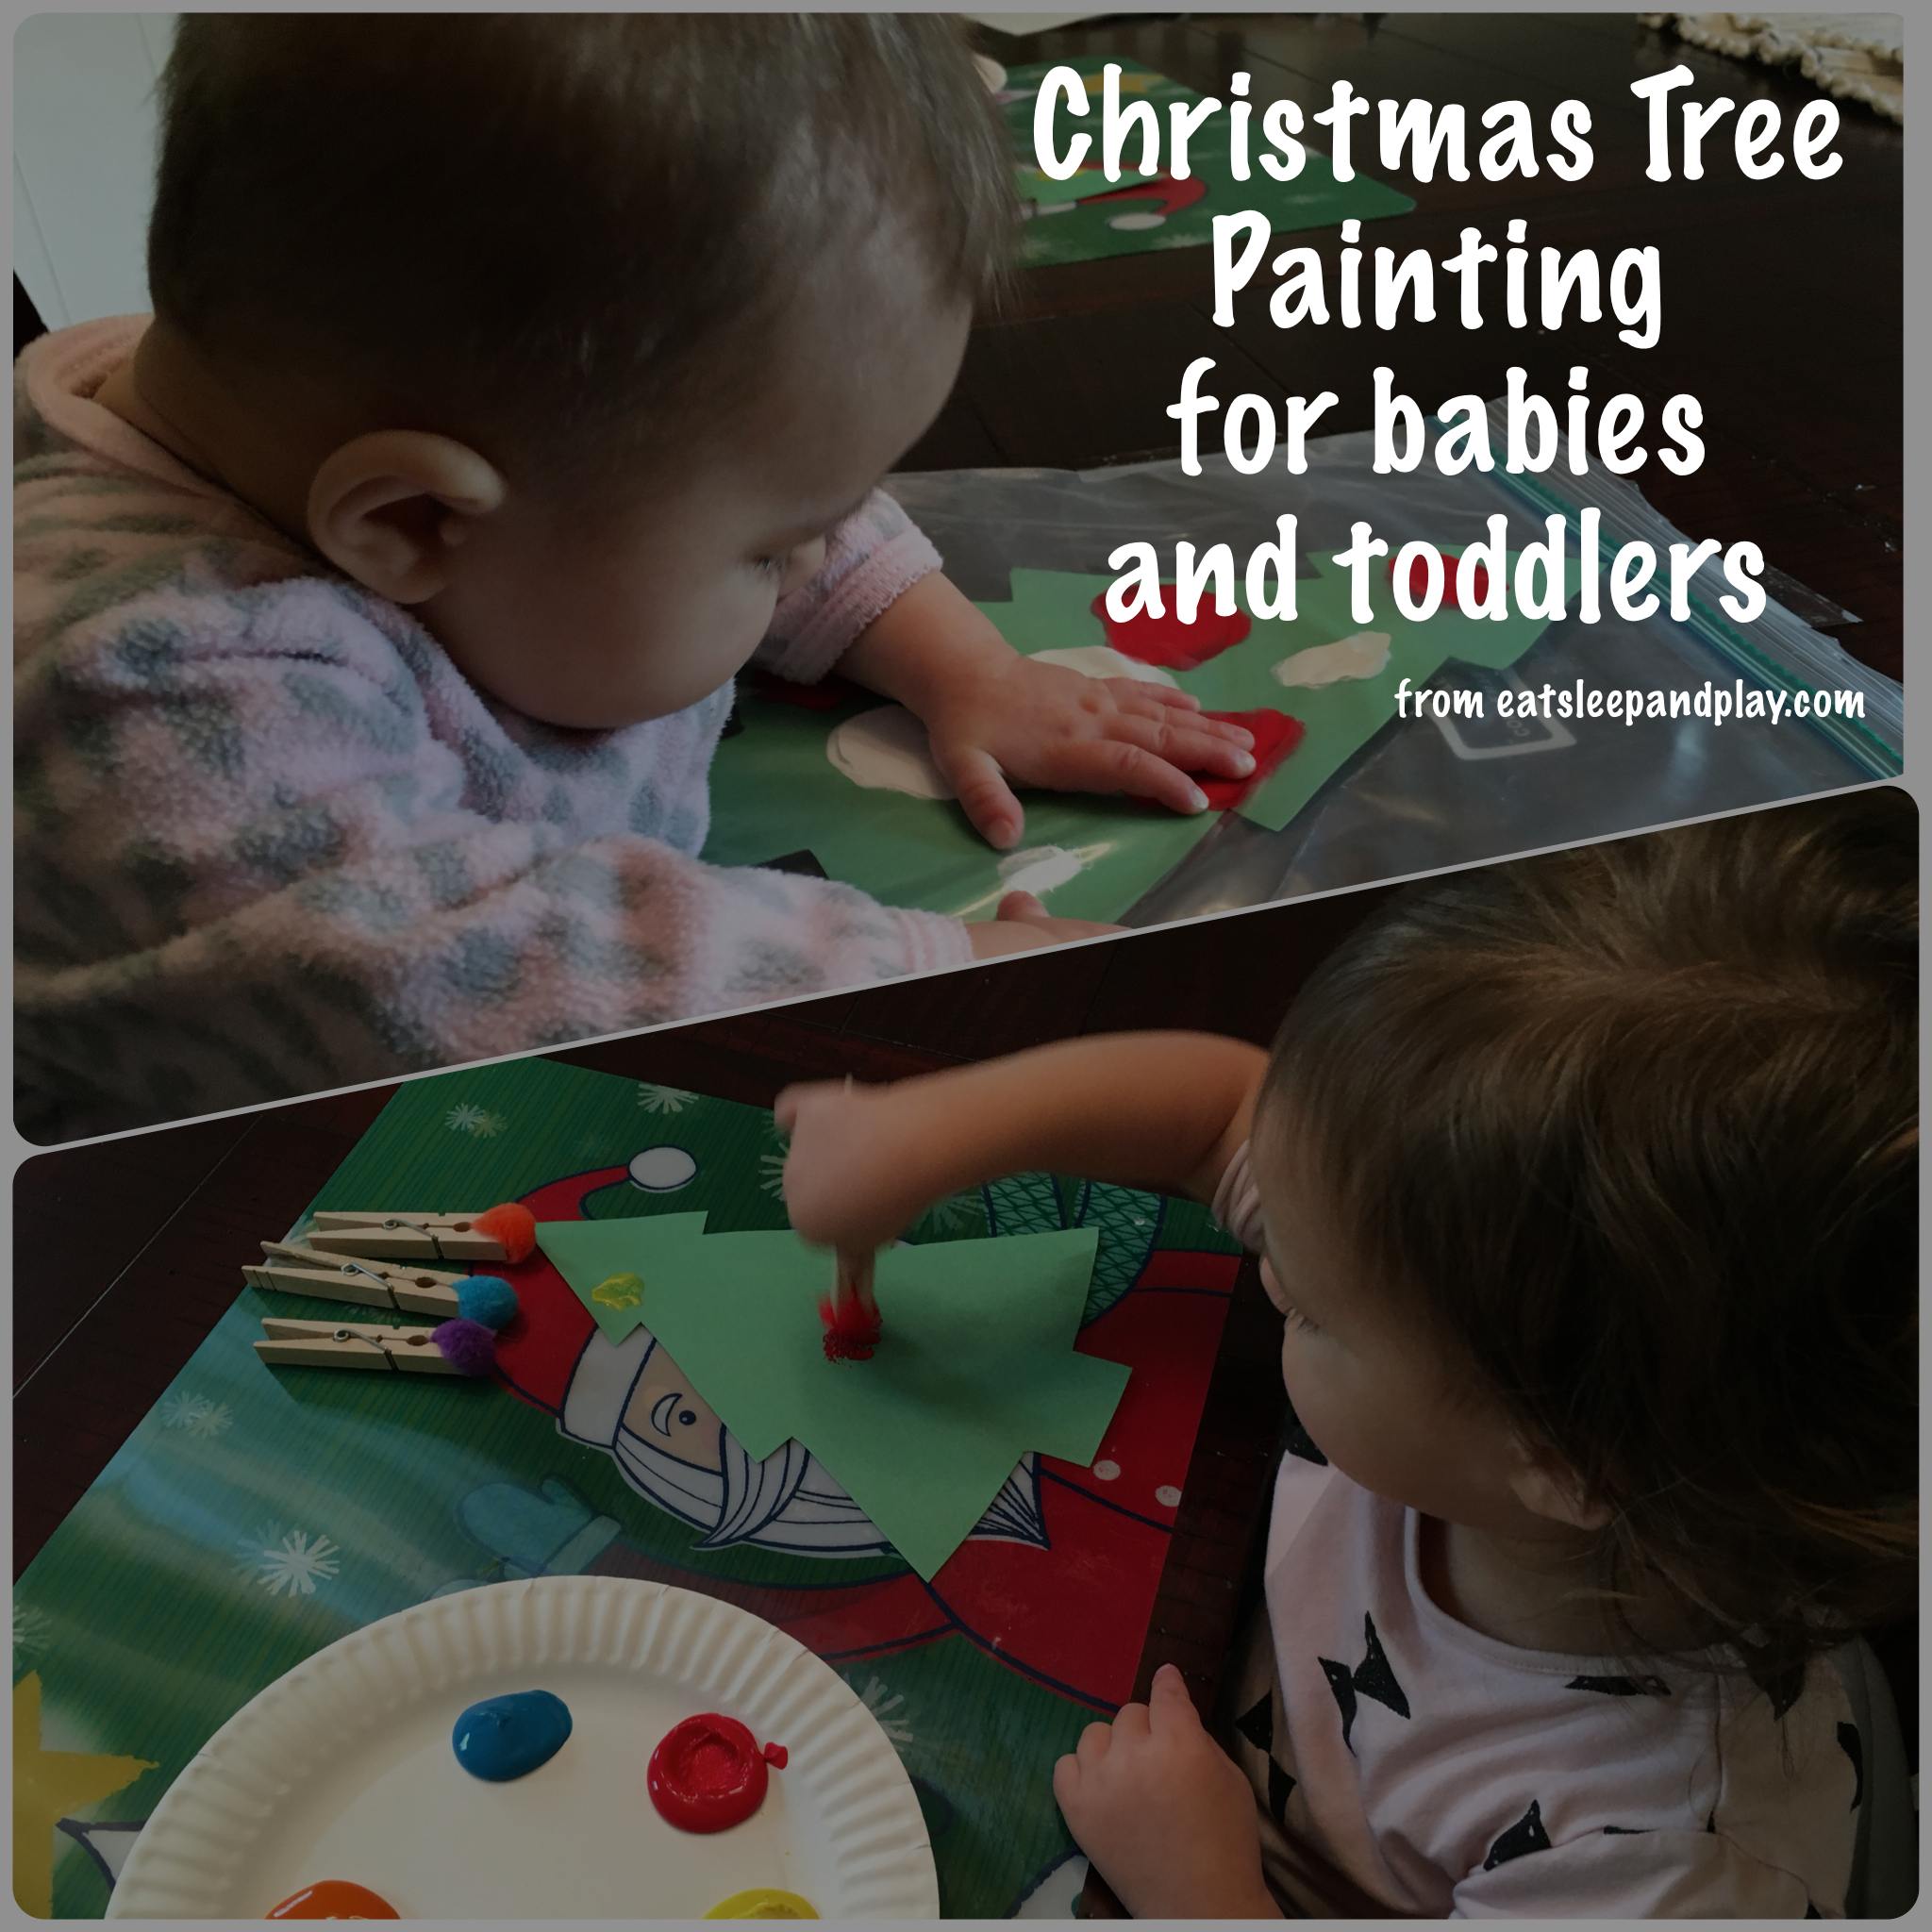 Christmas Tree Painting, toddlers 18 months+